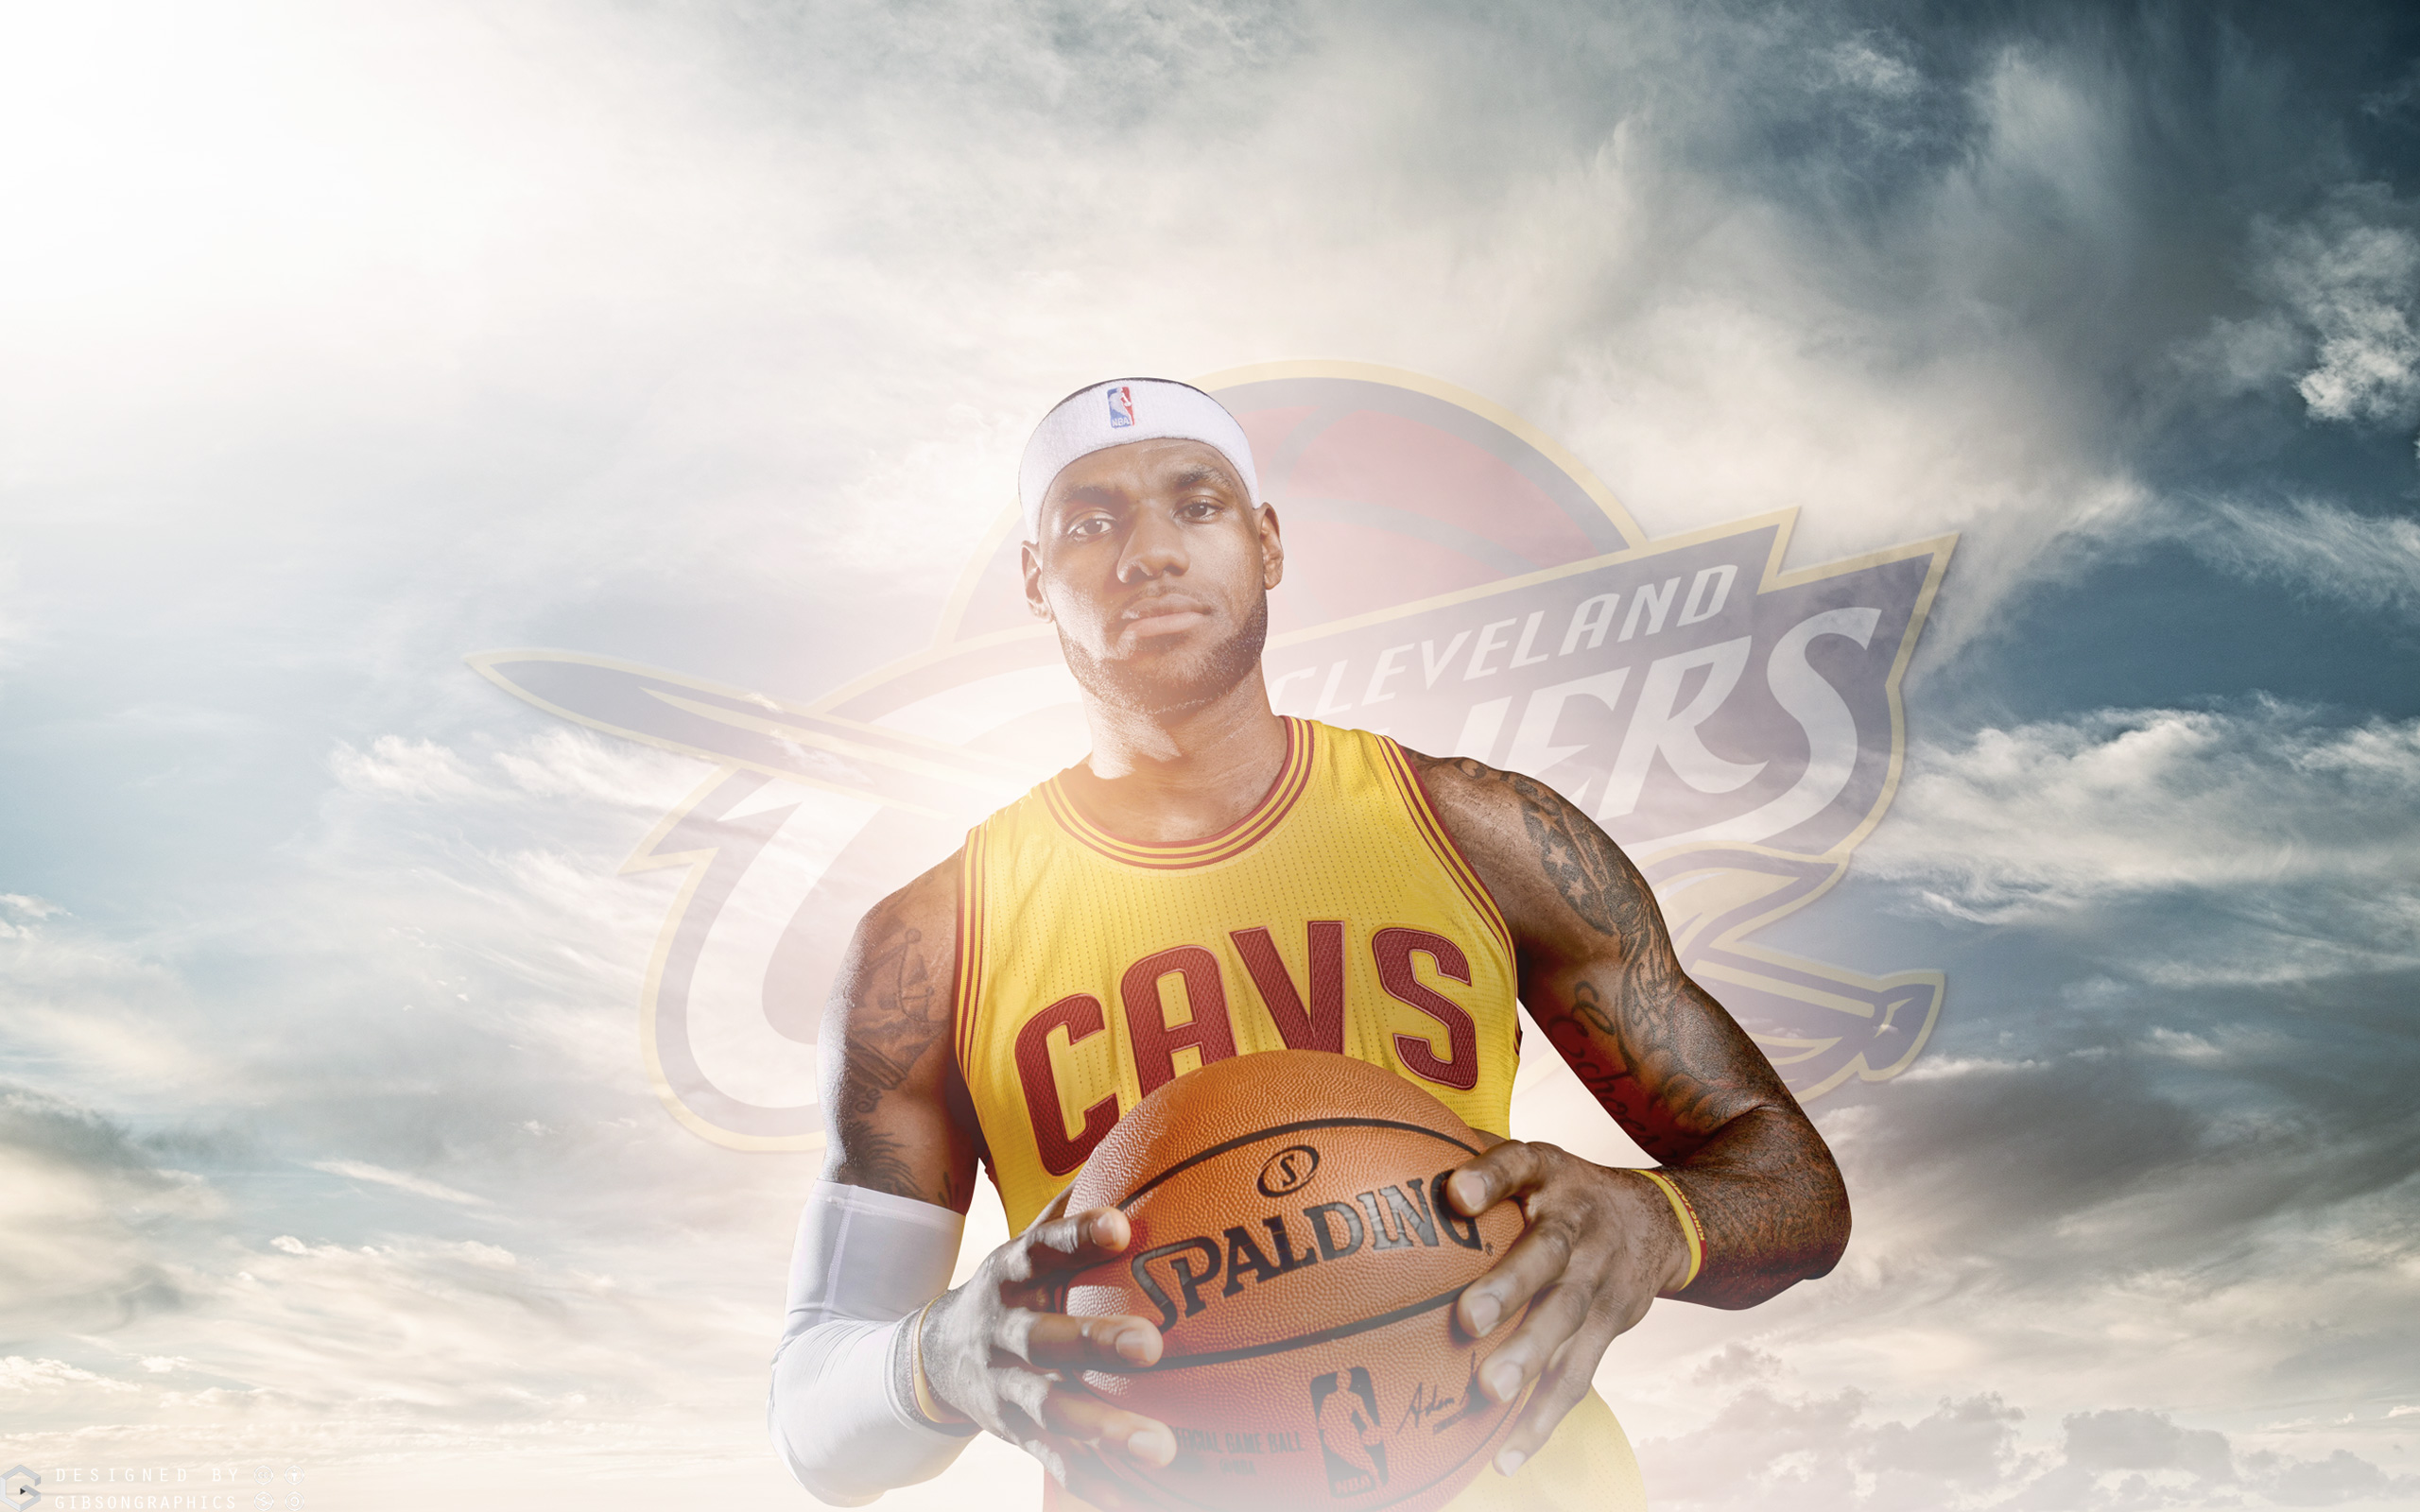 King James 2015 Cleveland Cavaliers Wallpaper Basketball 2560x1600